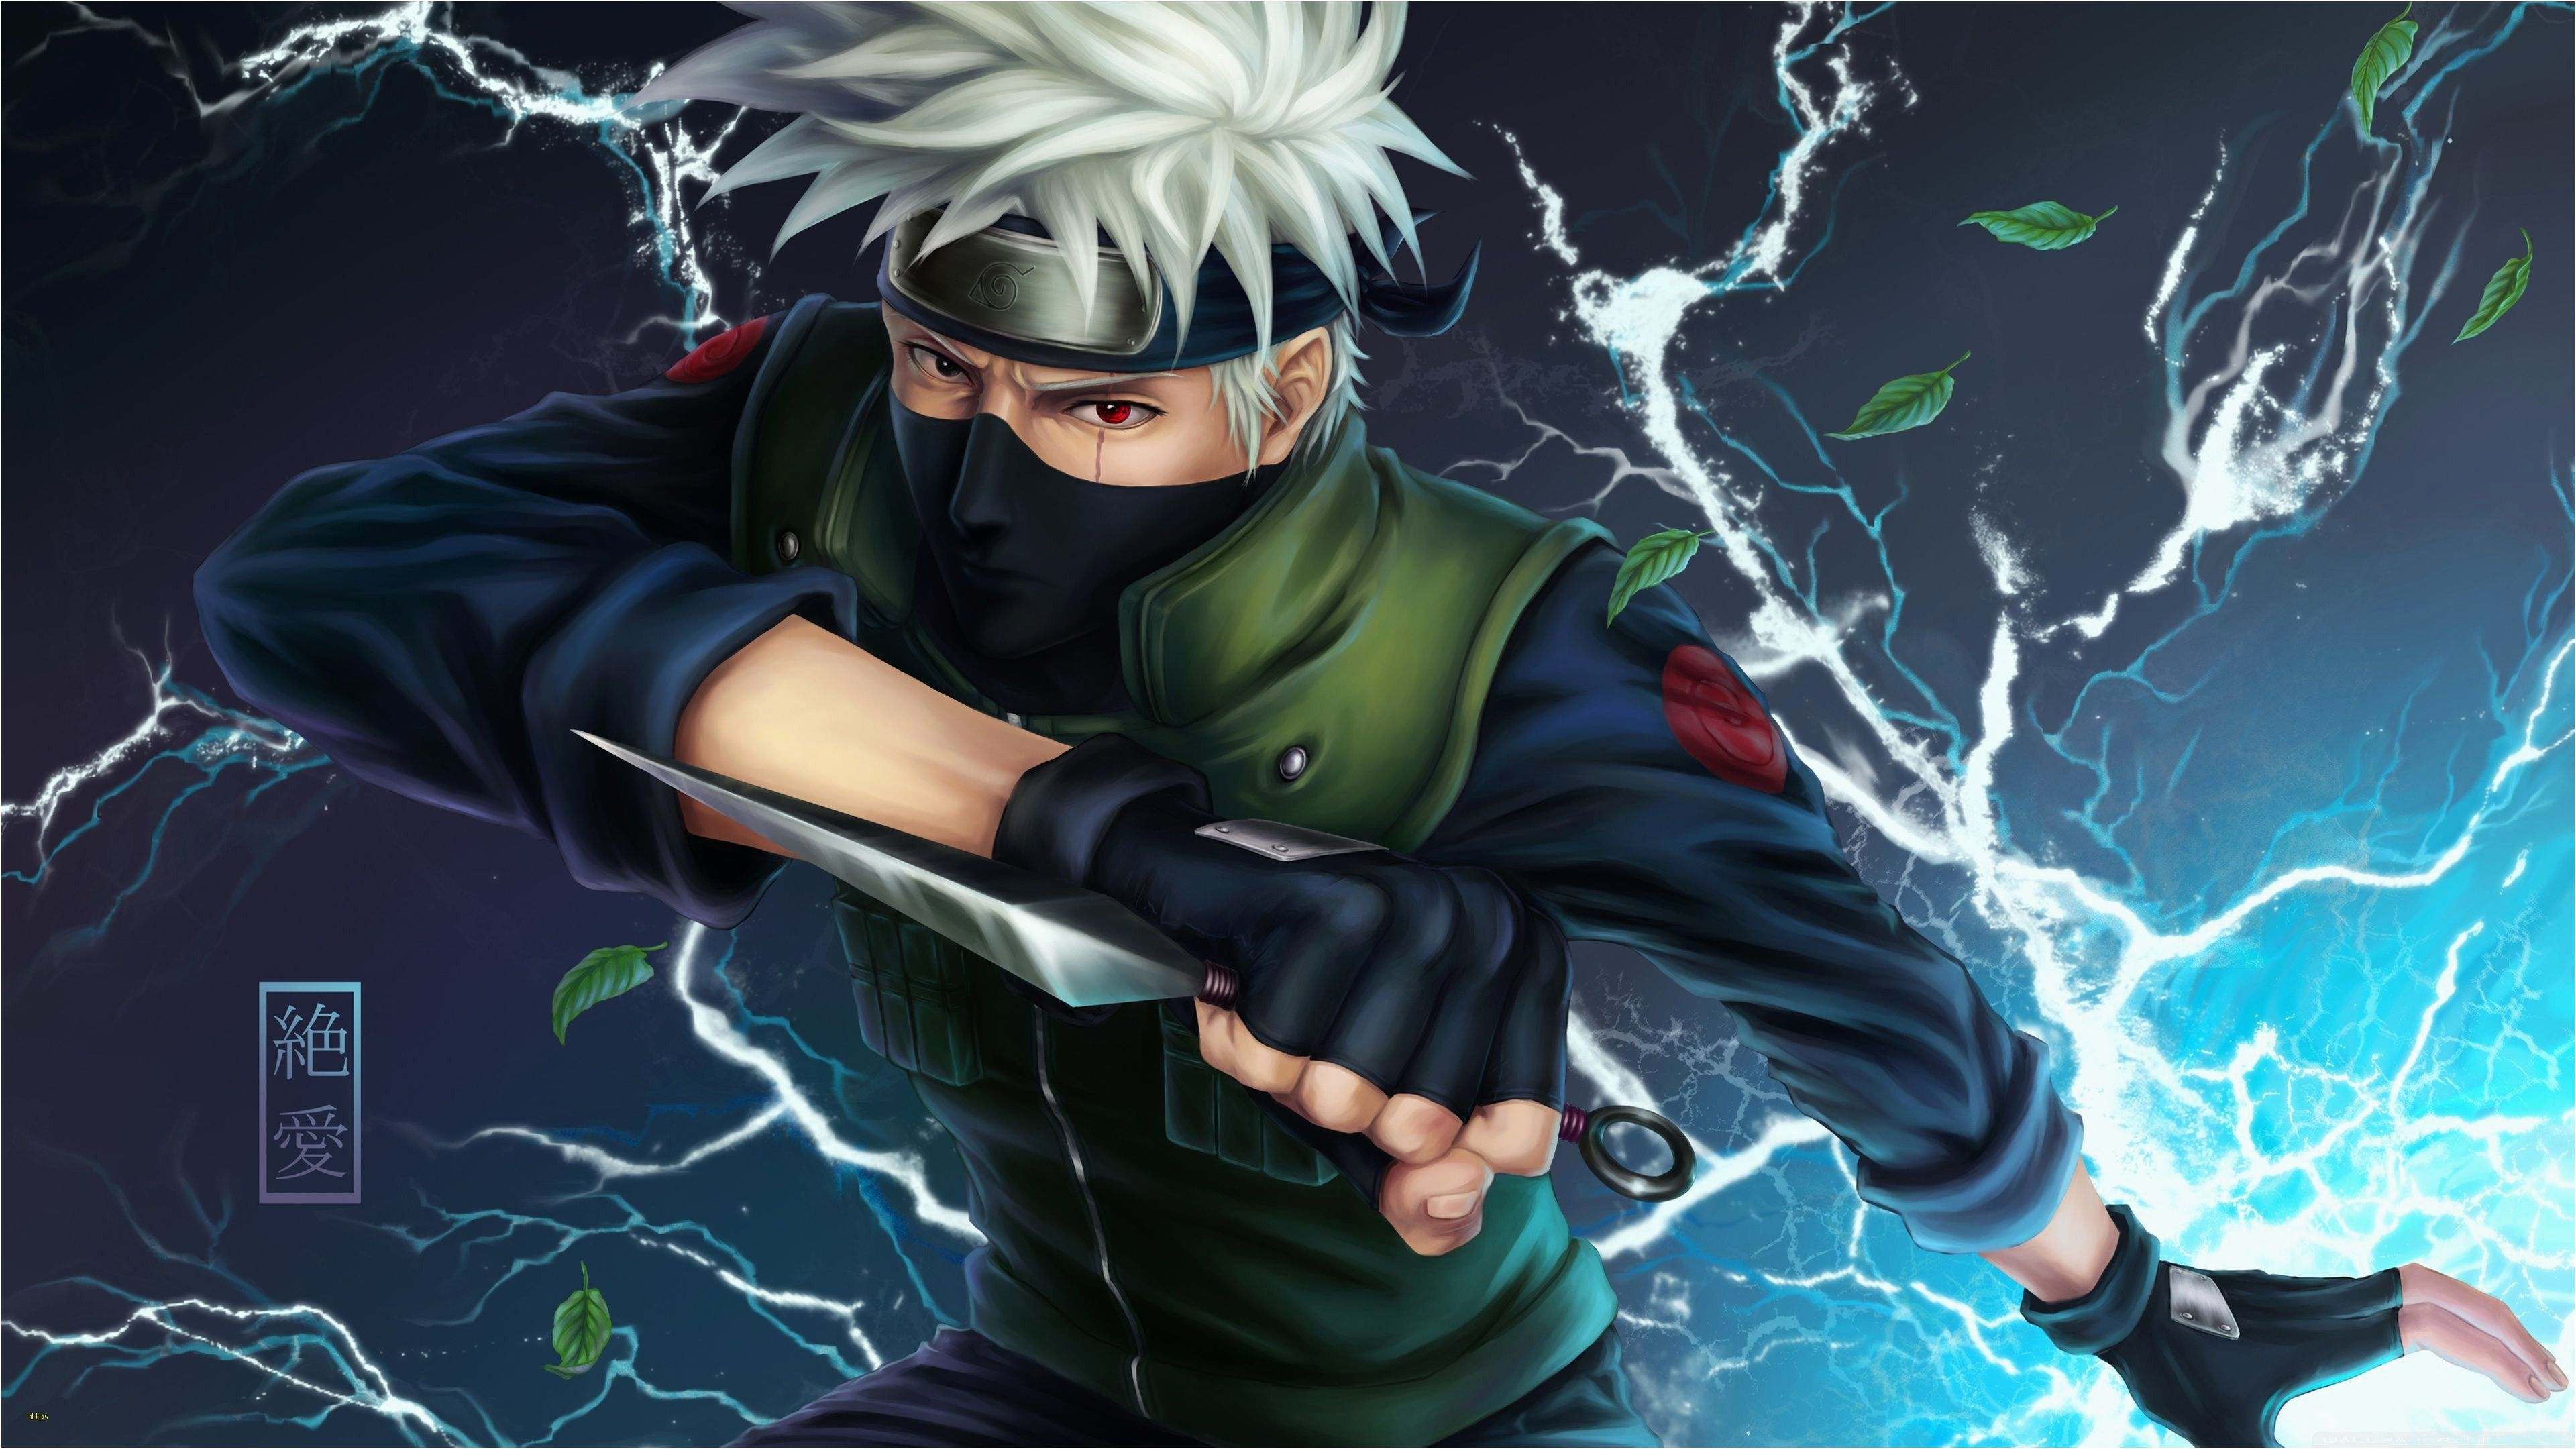 Badass Wallpapers Hd Elegant Naruto Wallpapers Hd Elegant - Kakashi